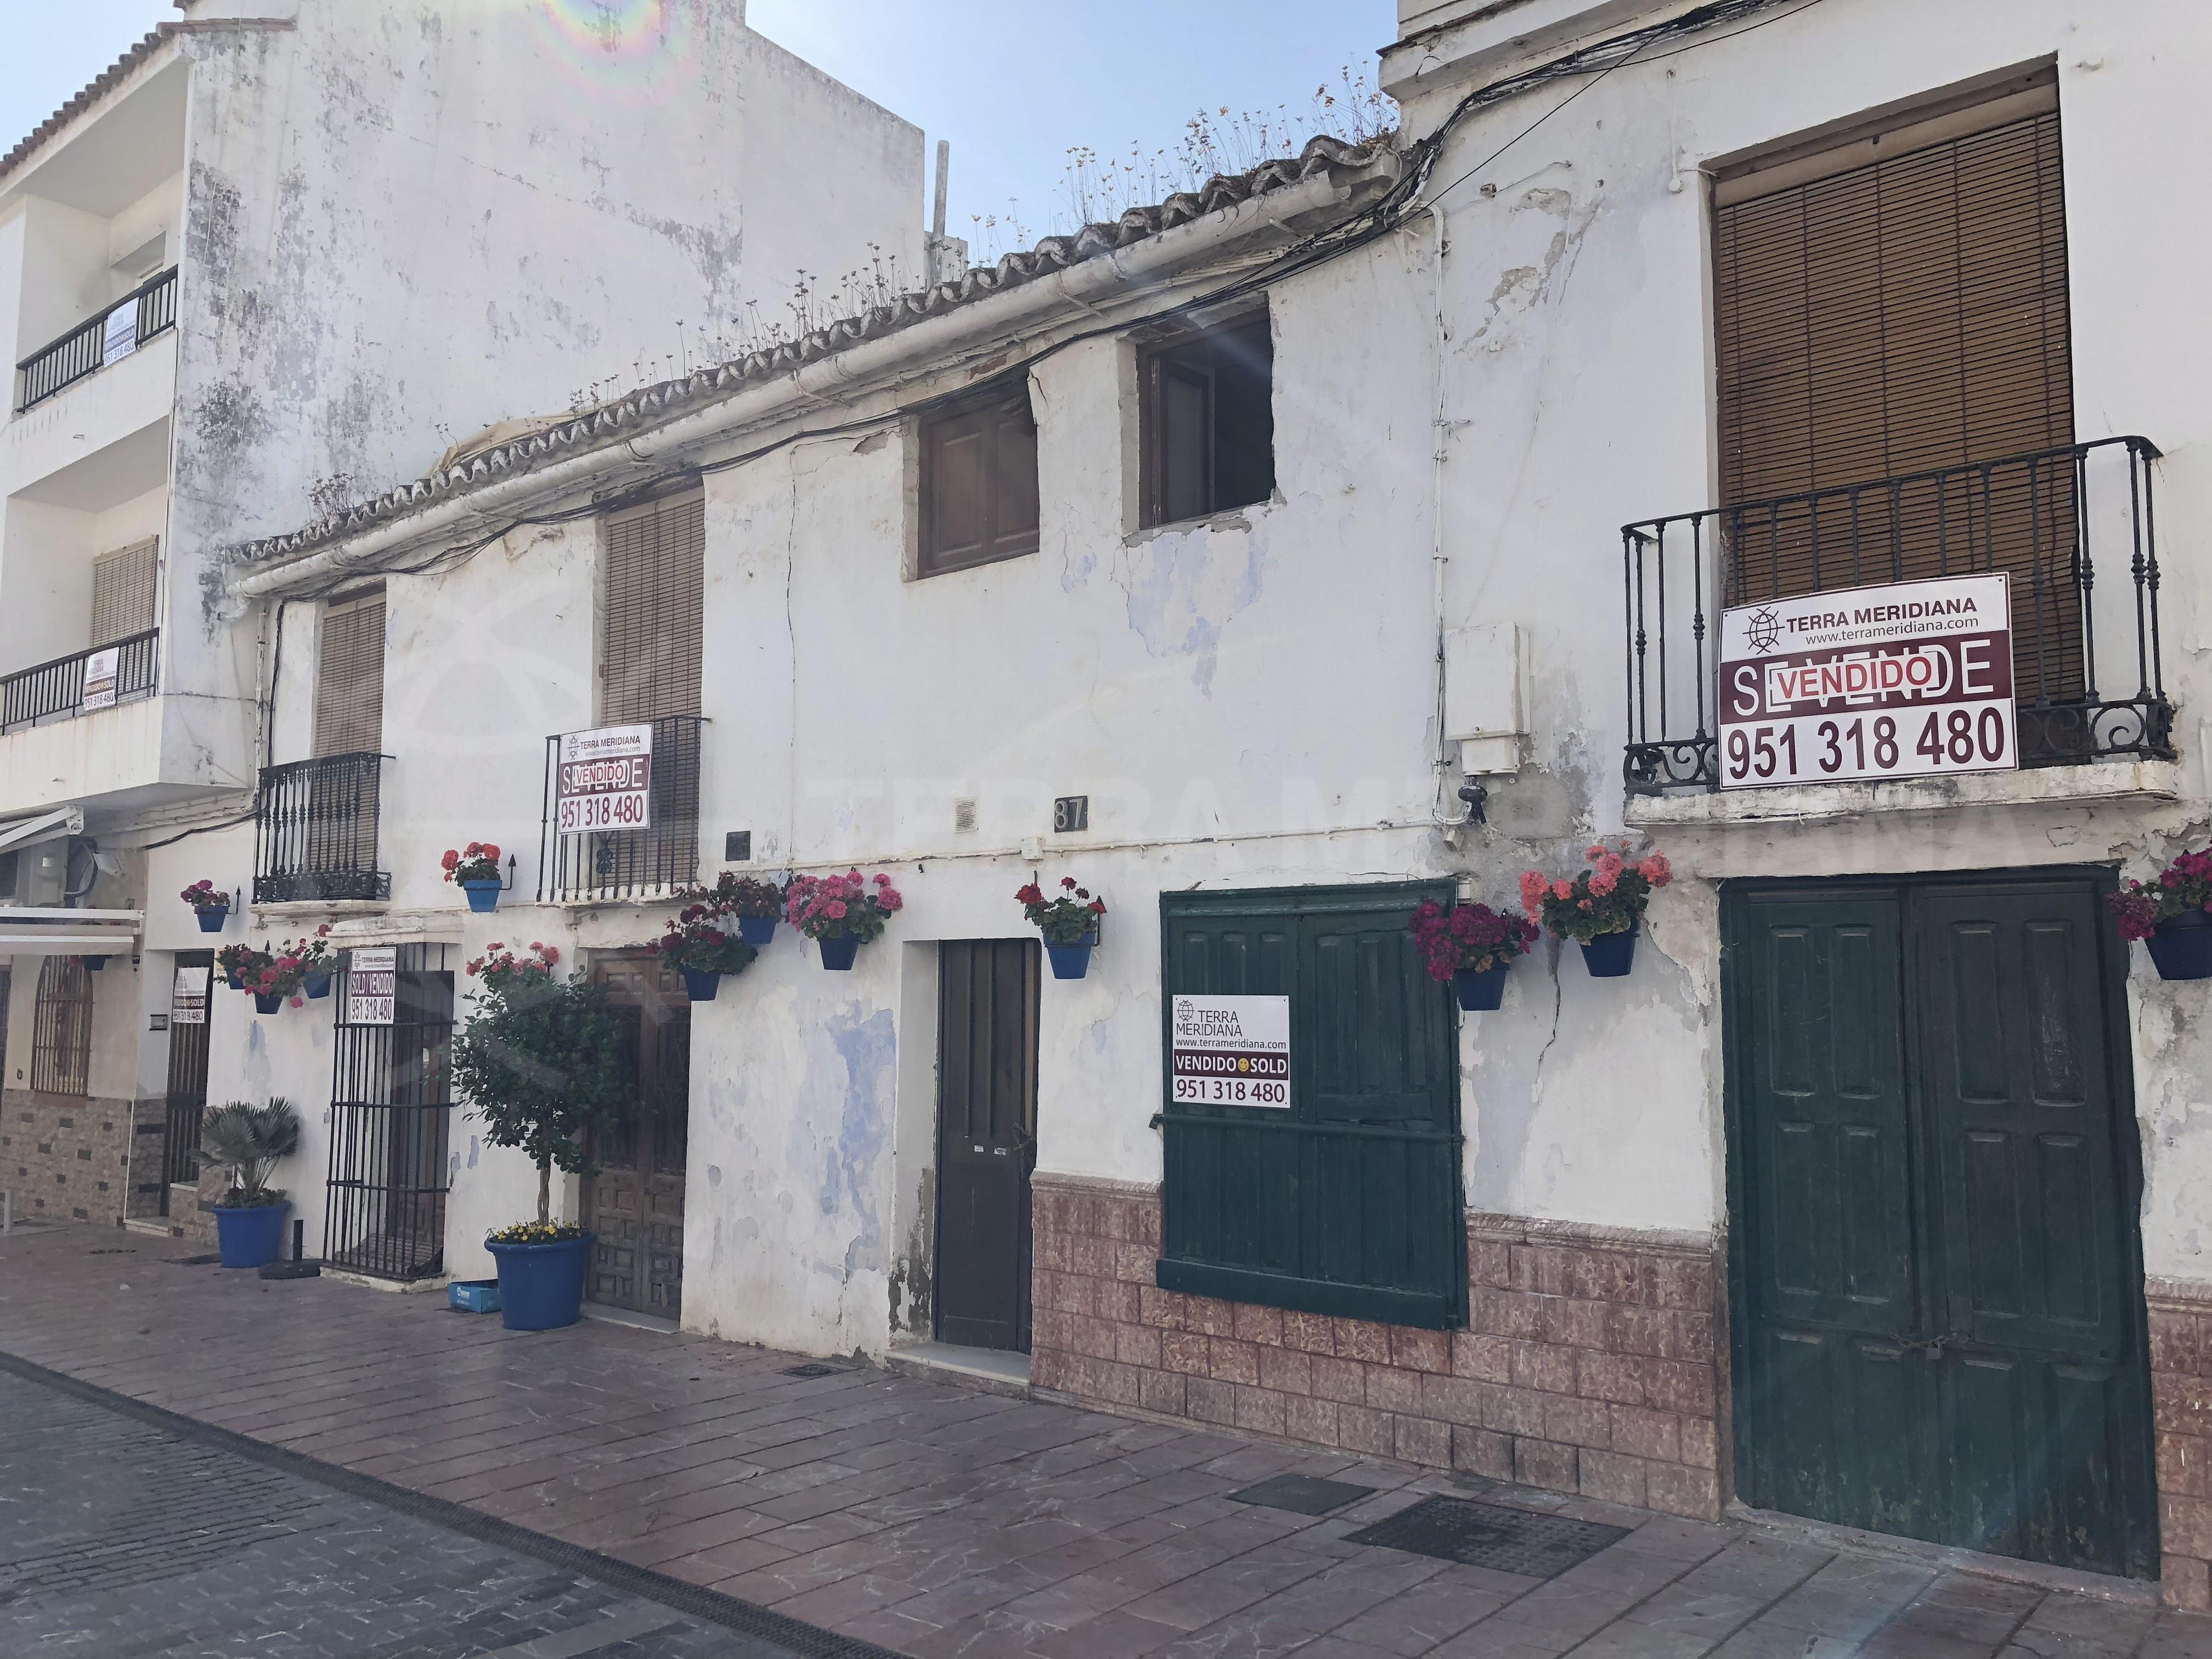 Terra Meridiana sells two exciting development projects in the heart of Estepona's Old Town